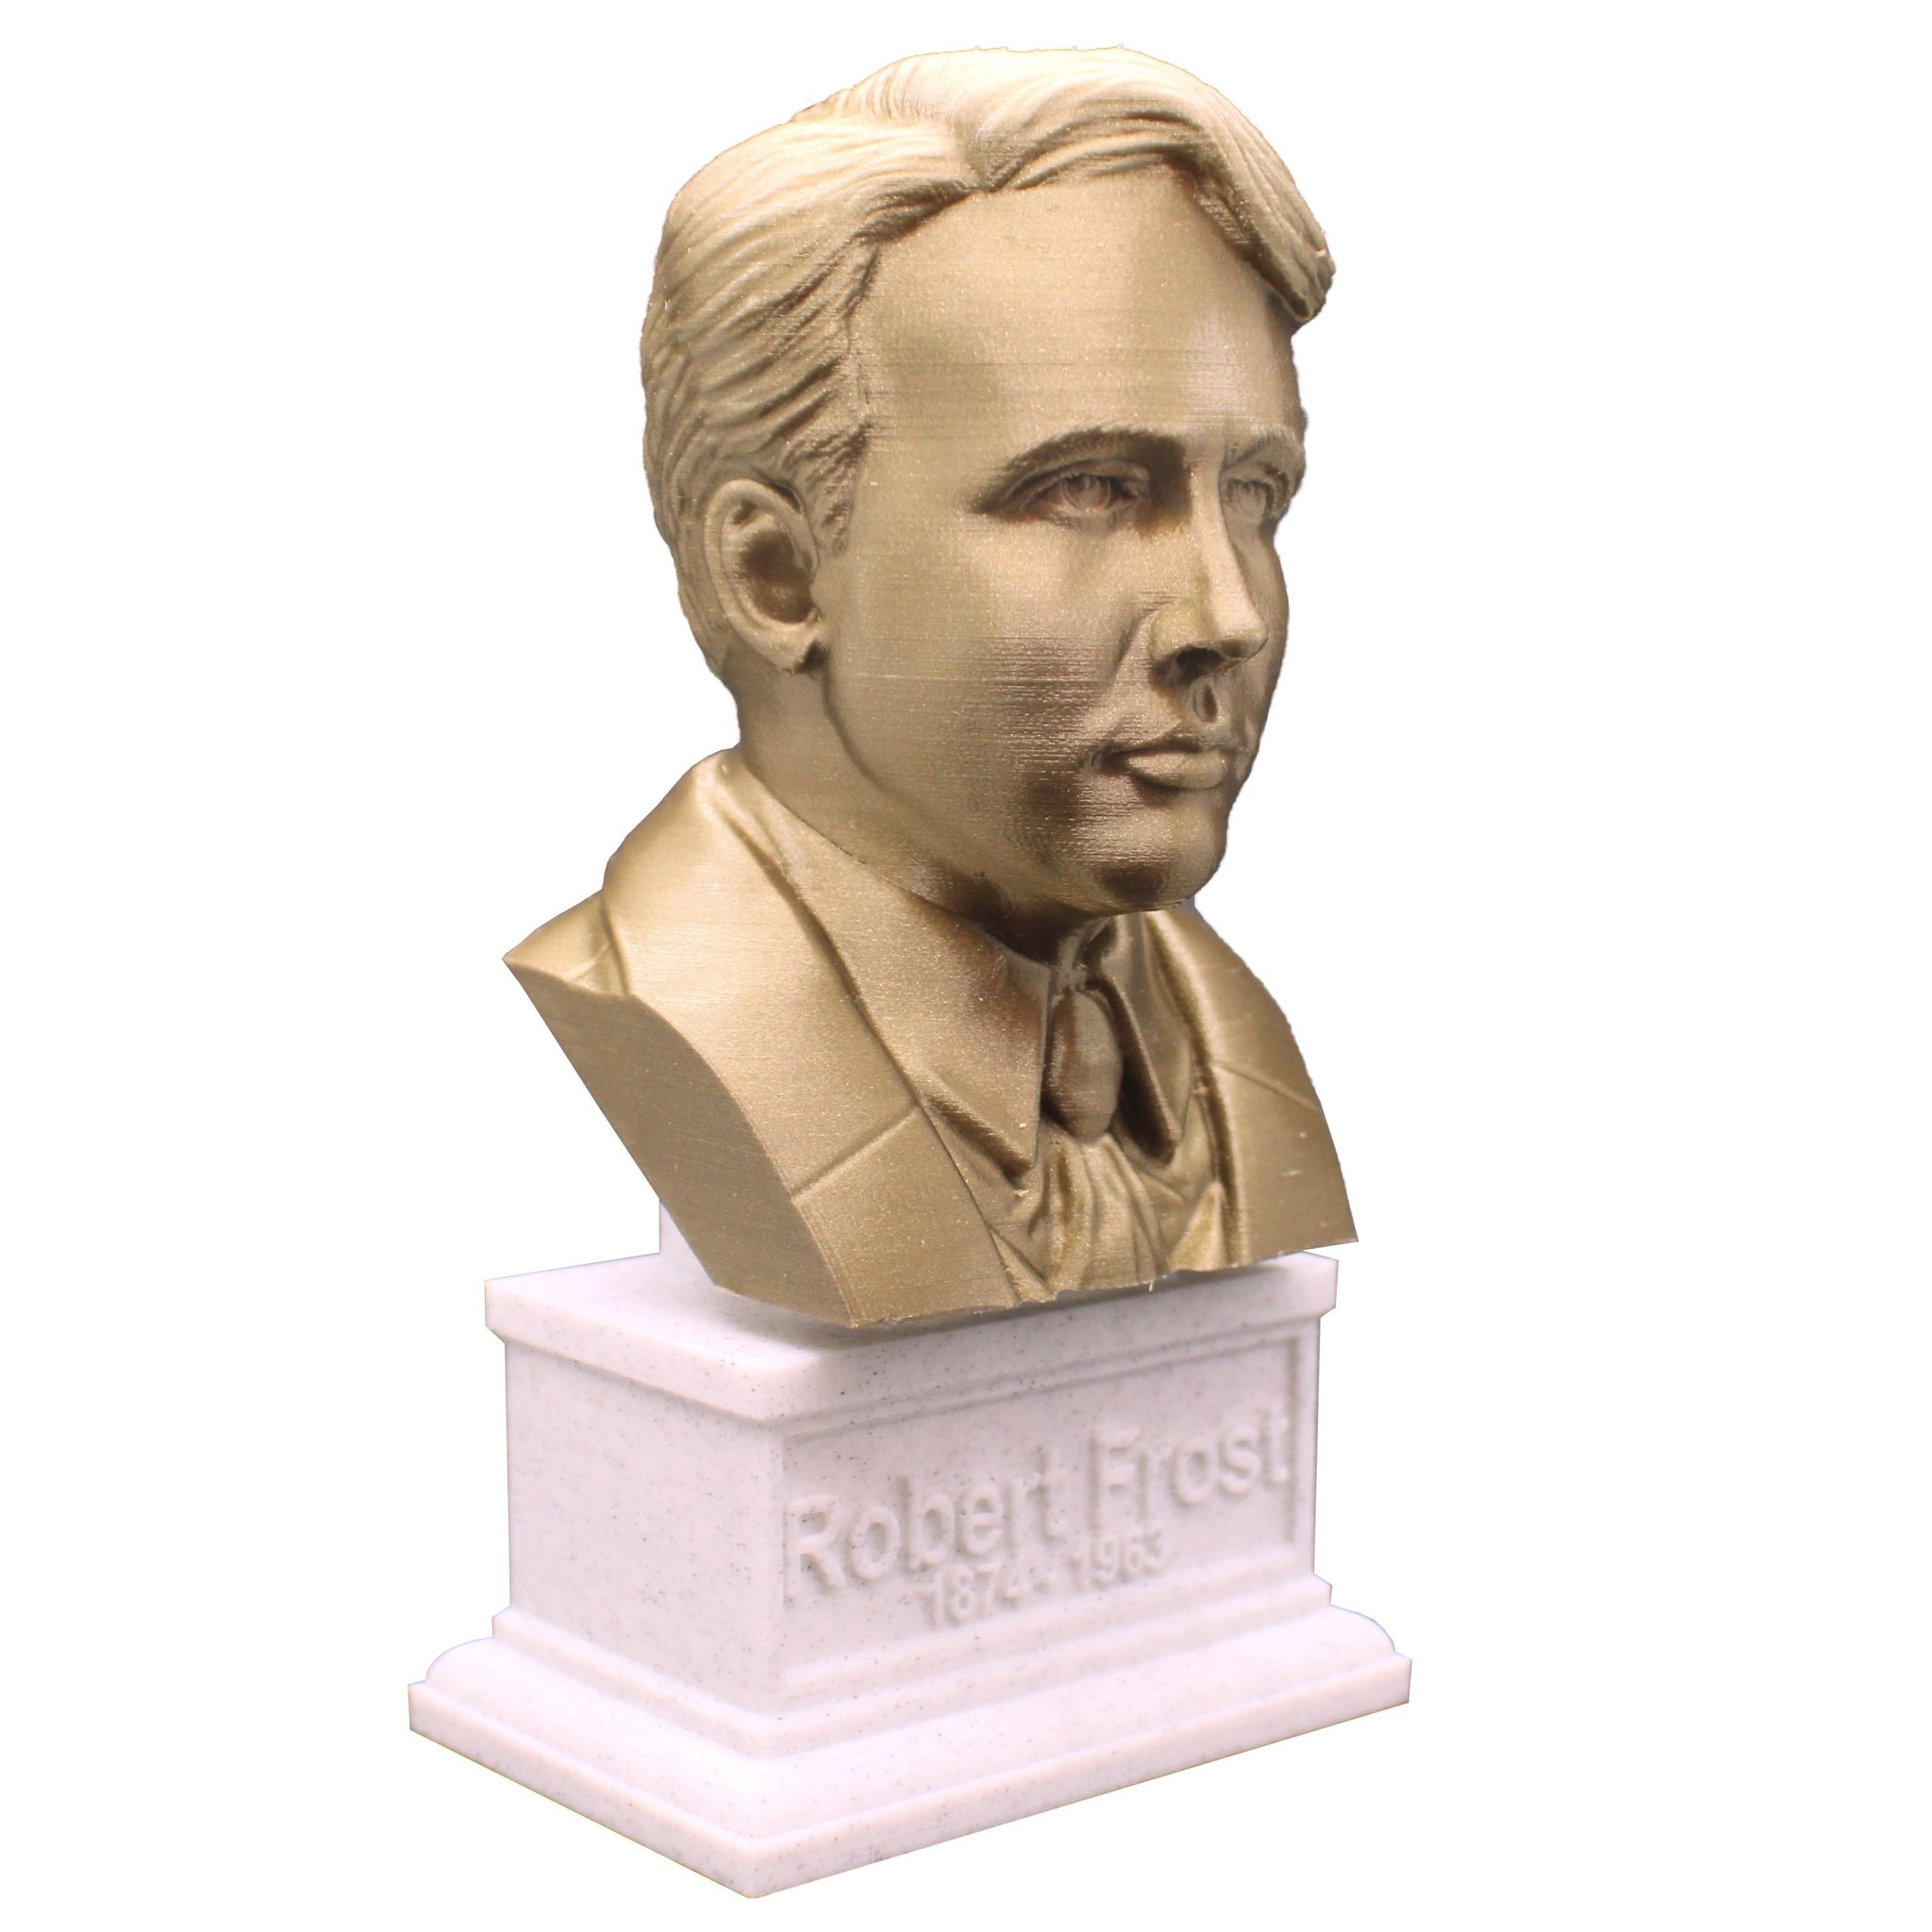 Robert Frost, American Poet, Sculpture Bust on Box Plinth